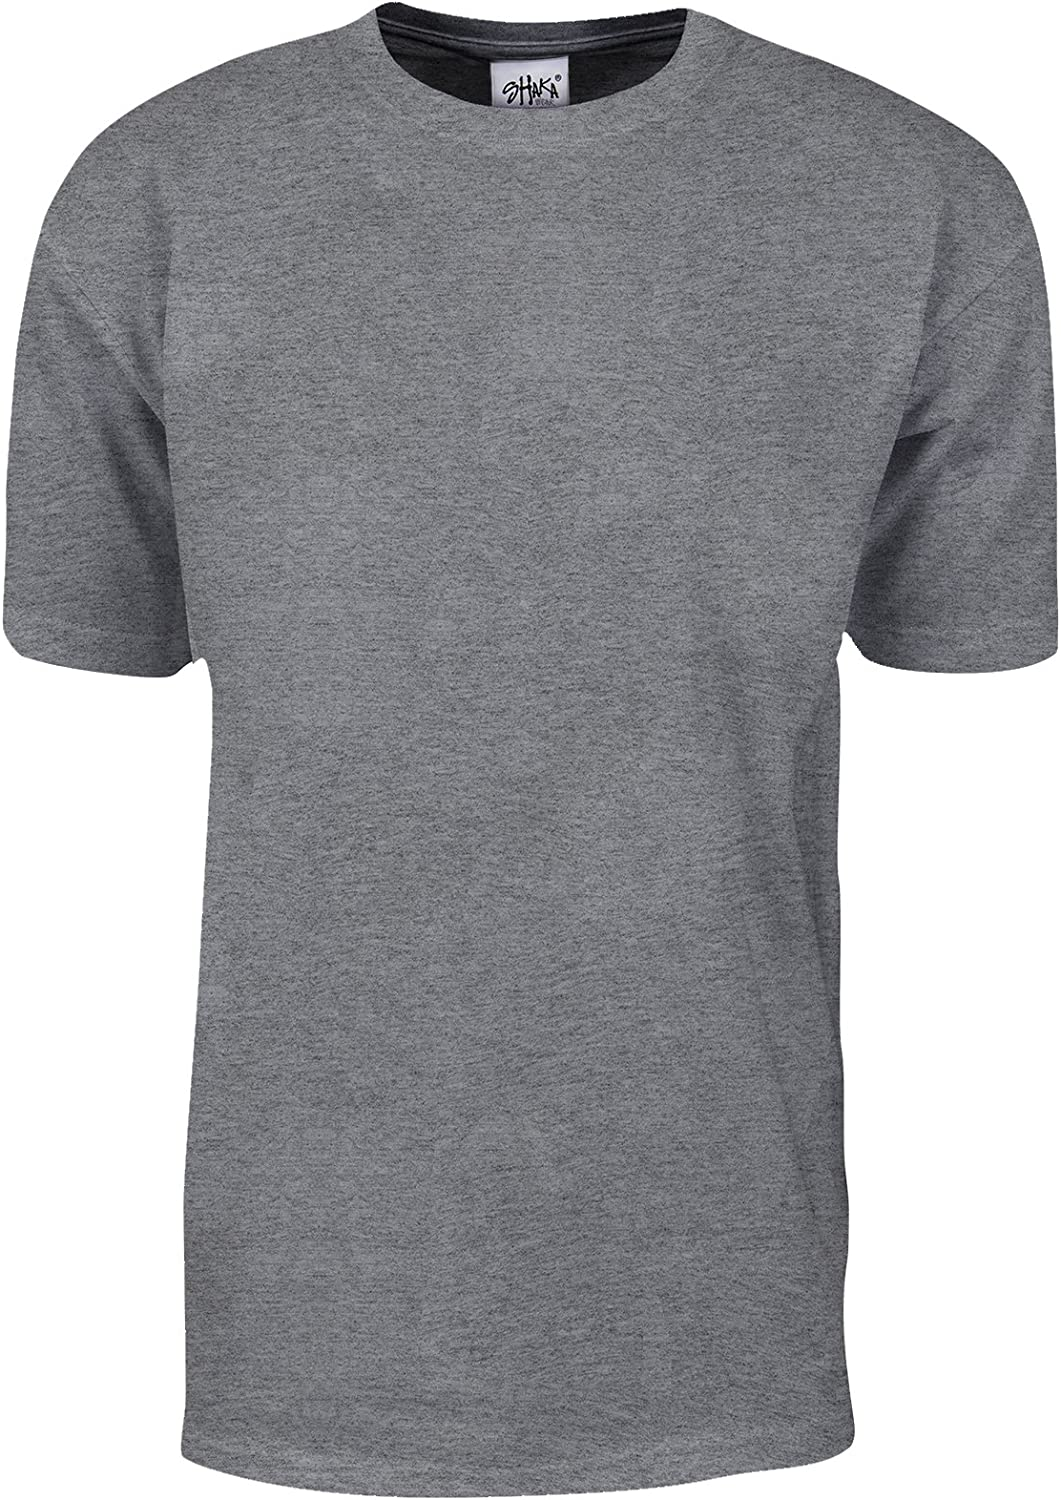 Fitscloth Mens Max Heavy Weight Cotton Short Sleeve T-Shirt